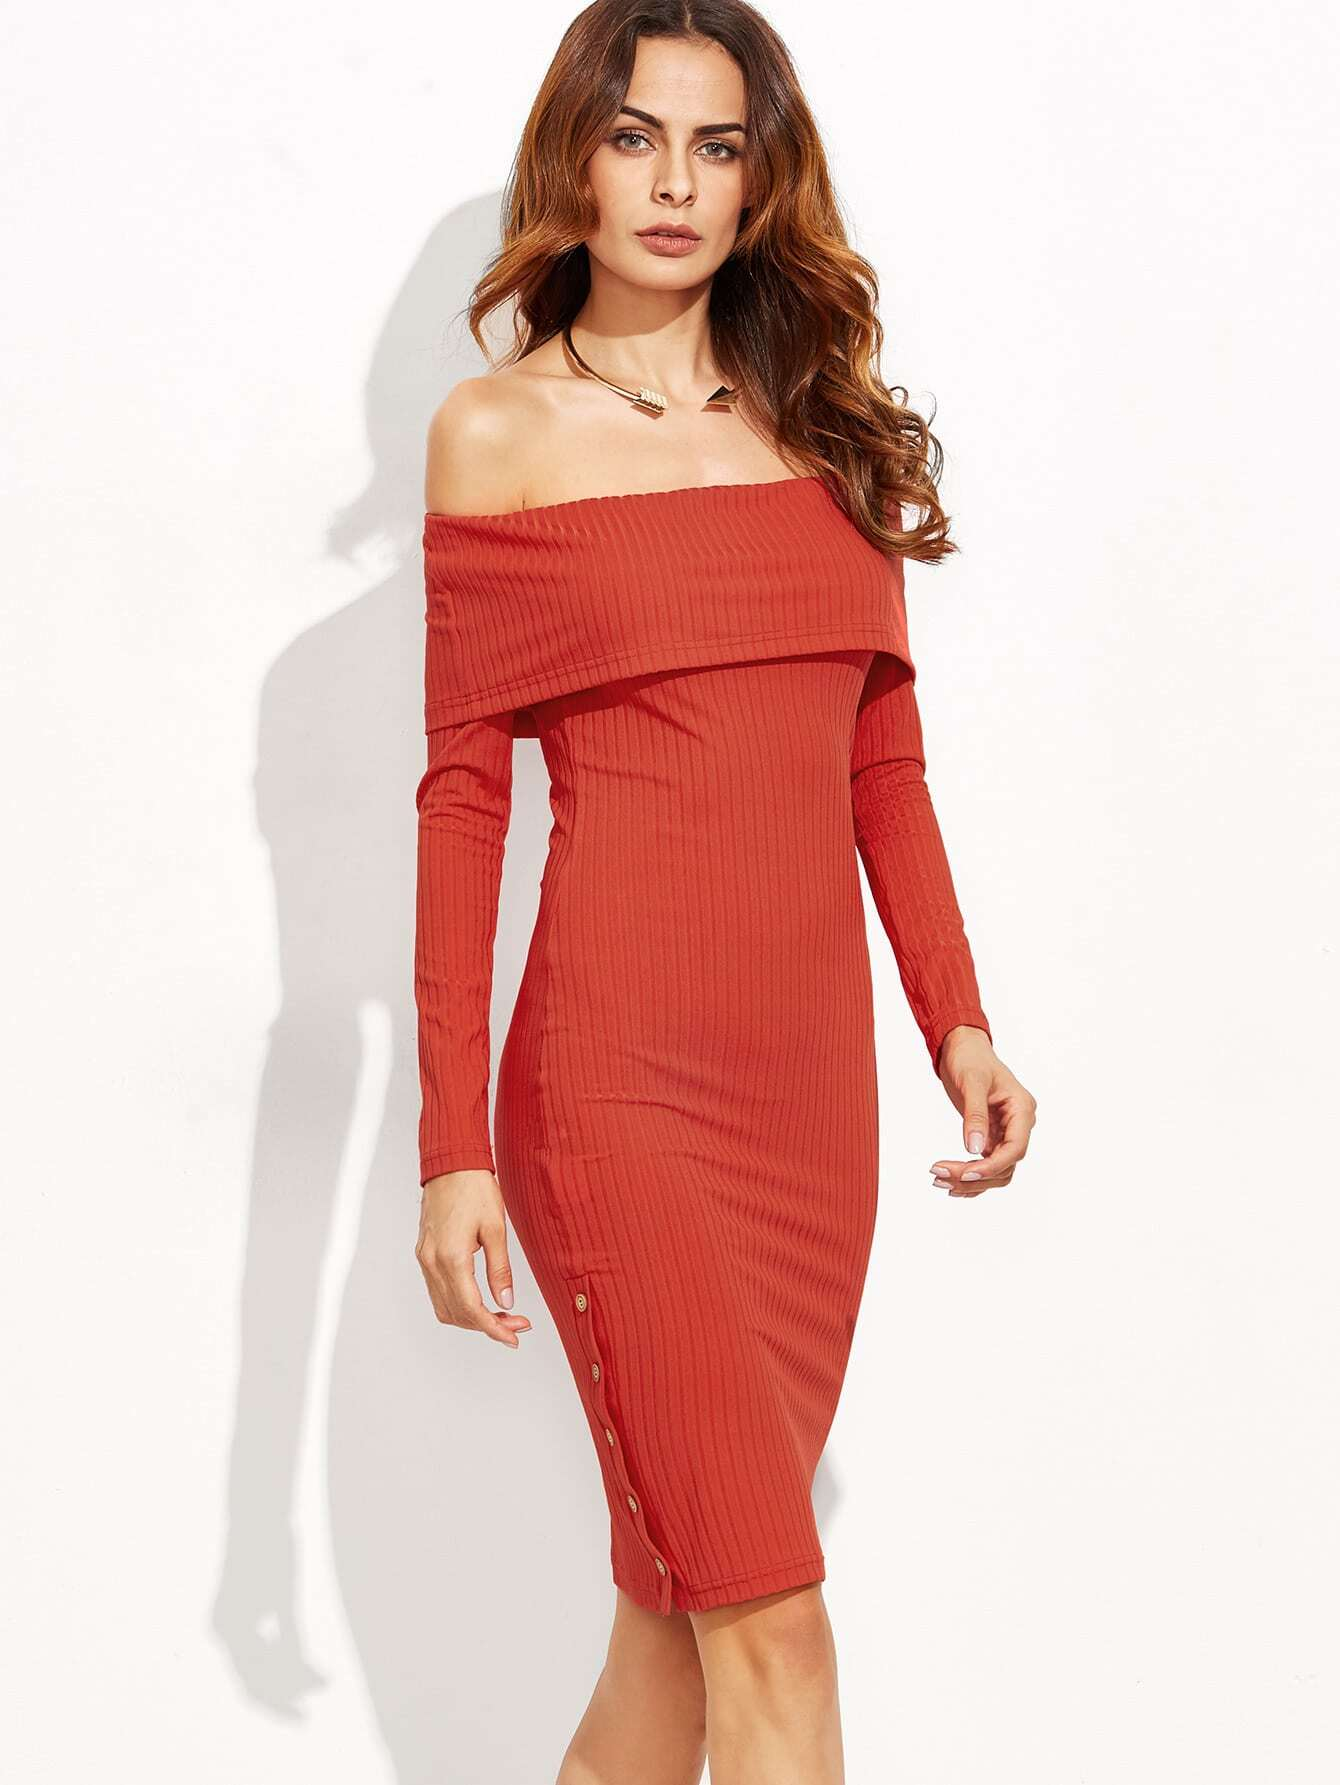 Red Foldover Off The Shoulder Button Side Ribbed DressRed Foldover Off The Shoulder Button Side Ribbed Dress<br><br>color: Red<br>size: L,M,S,XS